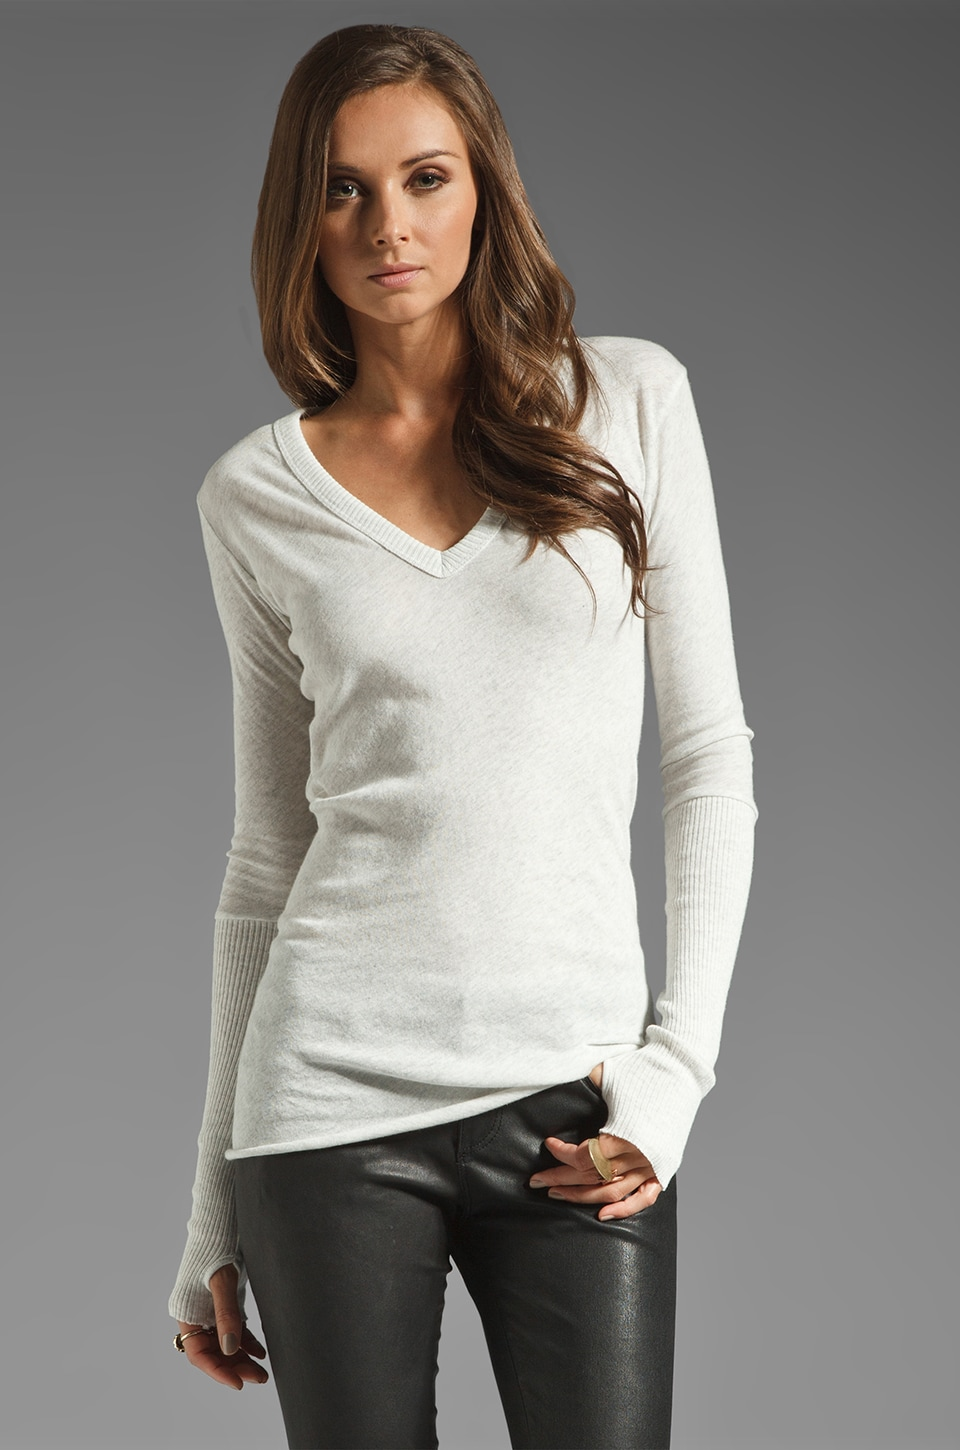 Enza Costa Cashmere Fitted Cuffed V Neck Sweater in Ash